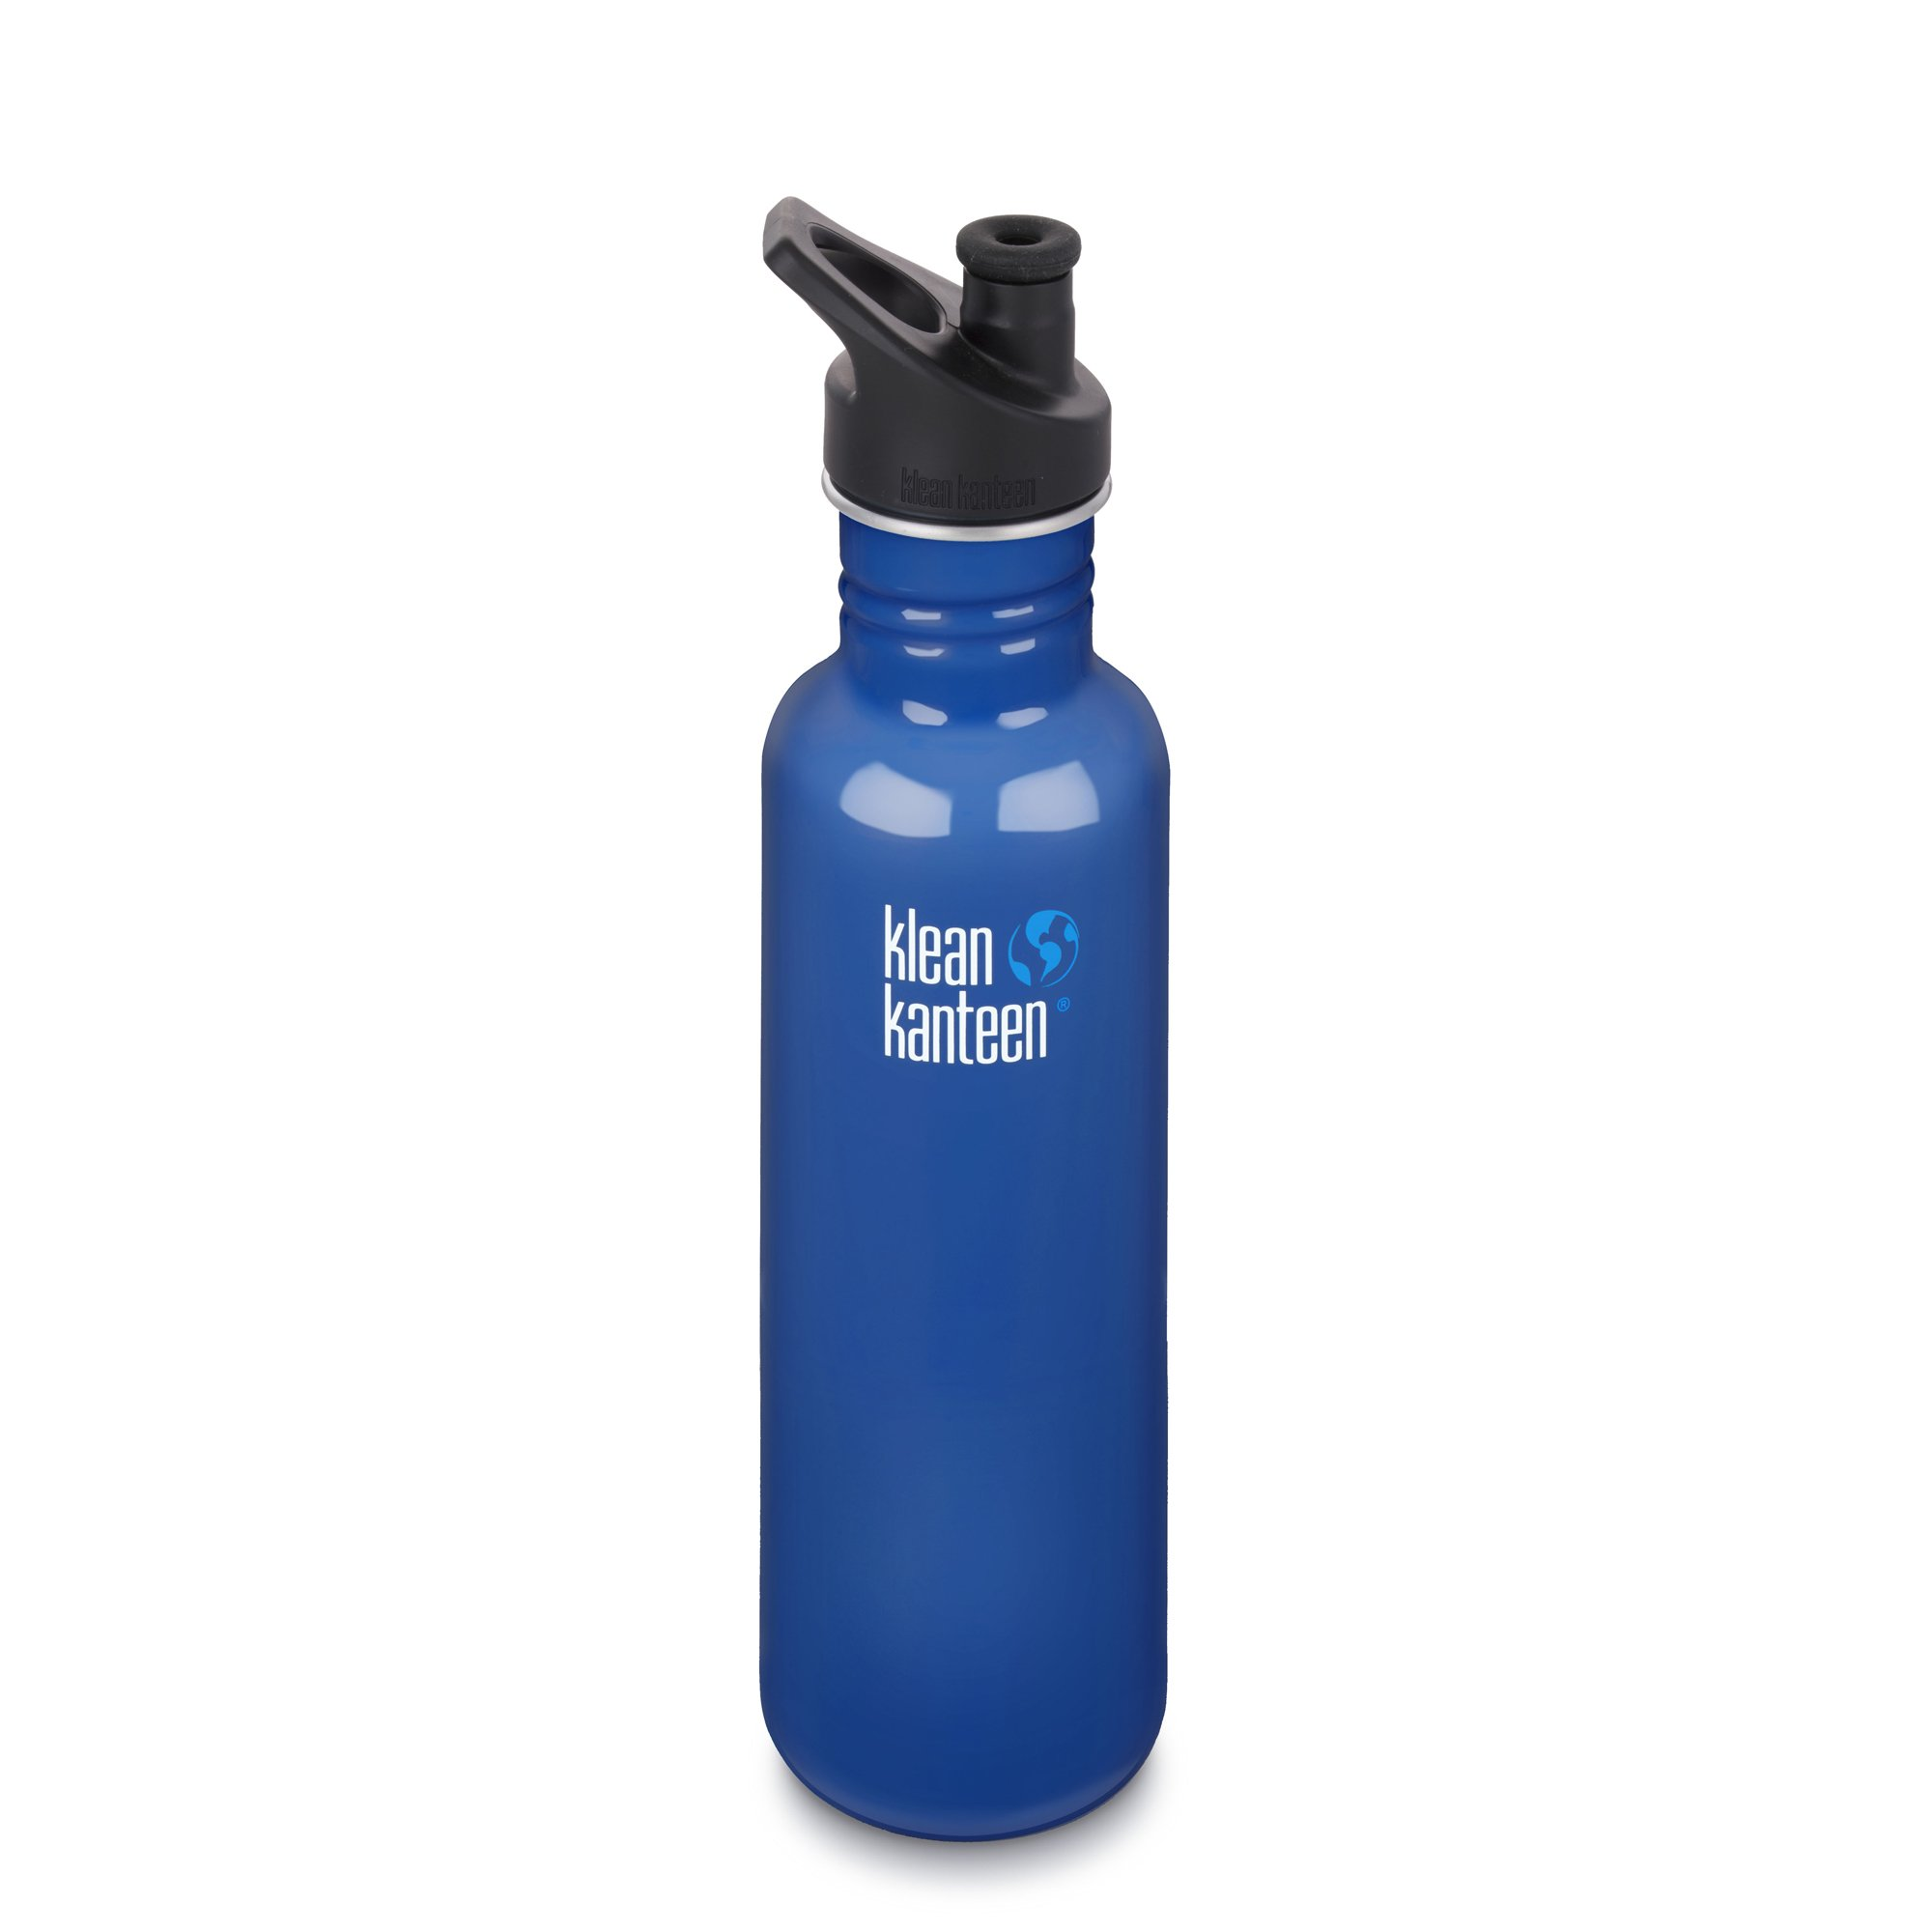 Klean Kanteen Classic Stainless Steel Bottle with Sport Cap, Blue Planet - 40oz